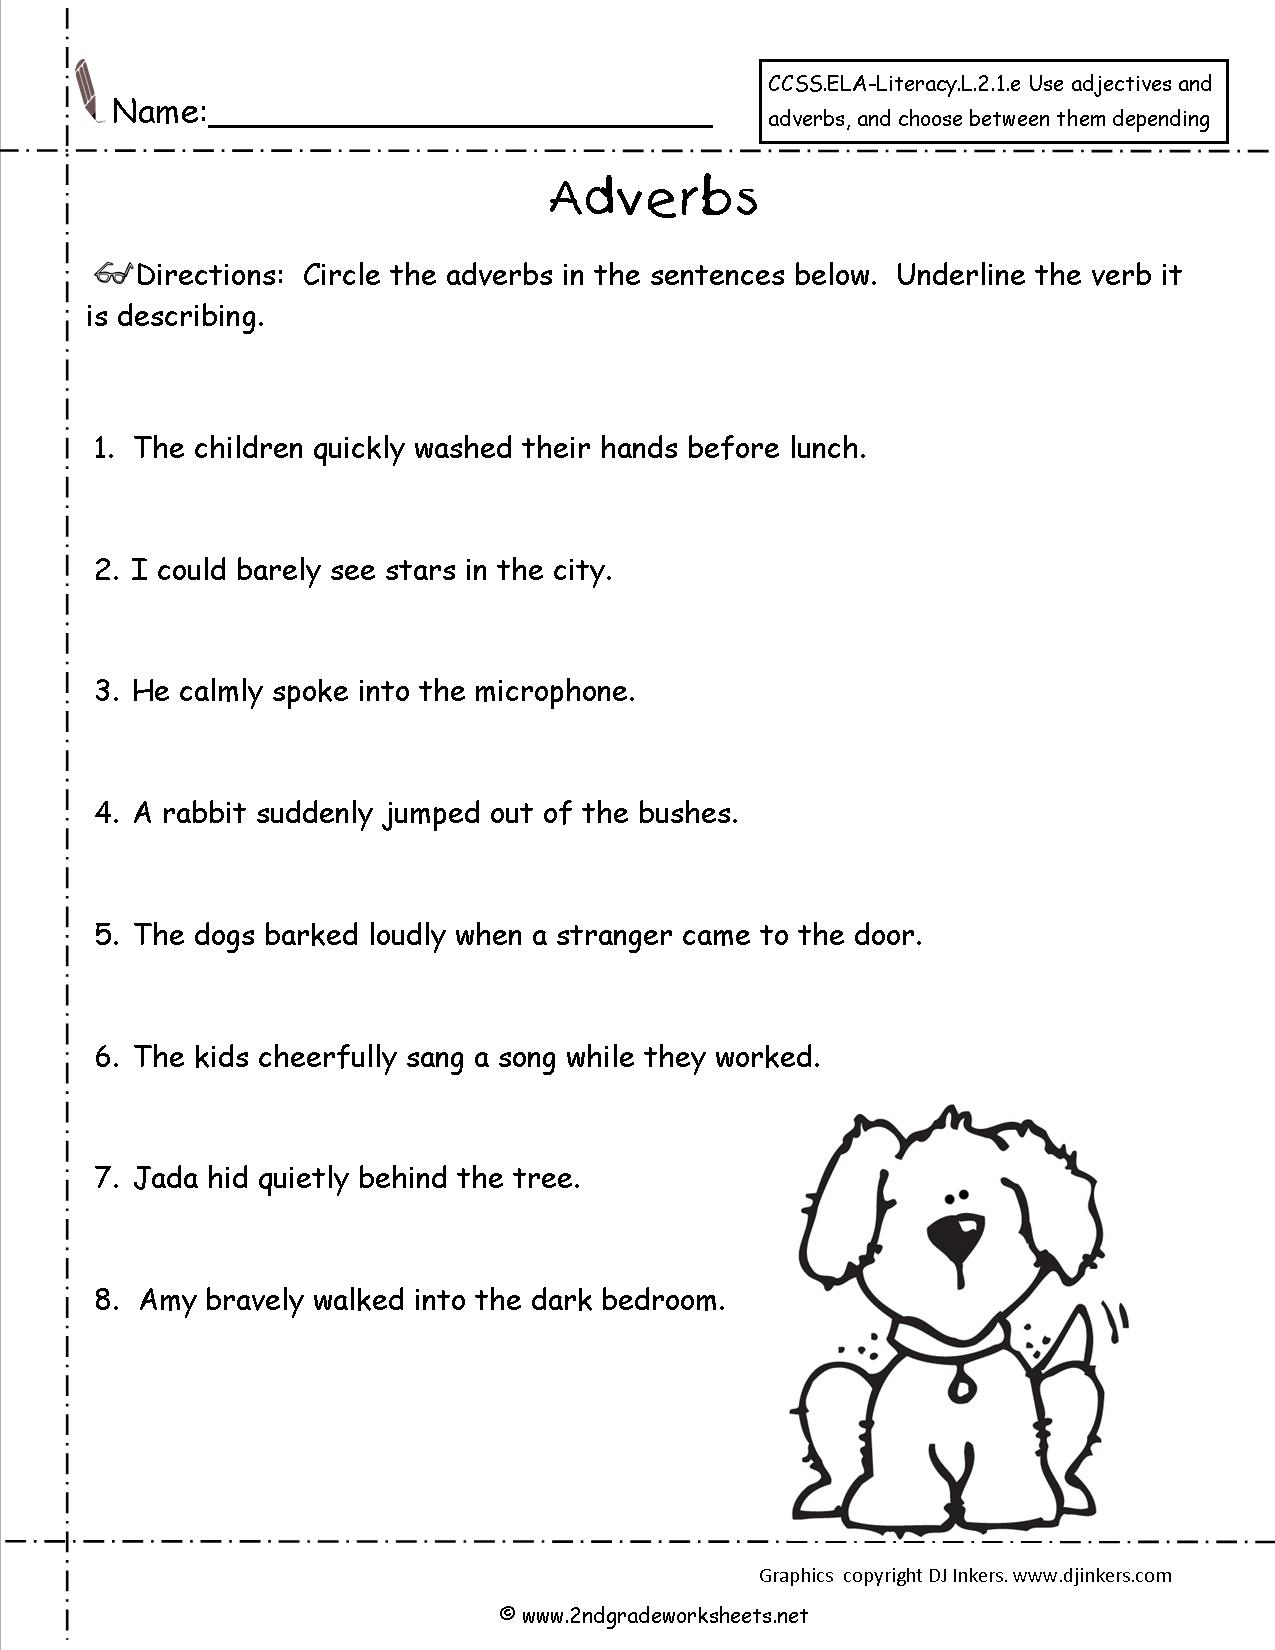 Adverbs Coloring Worksheet